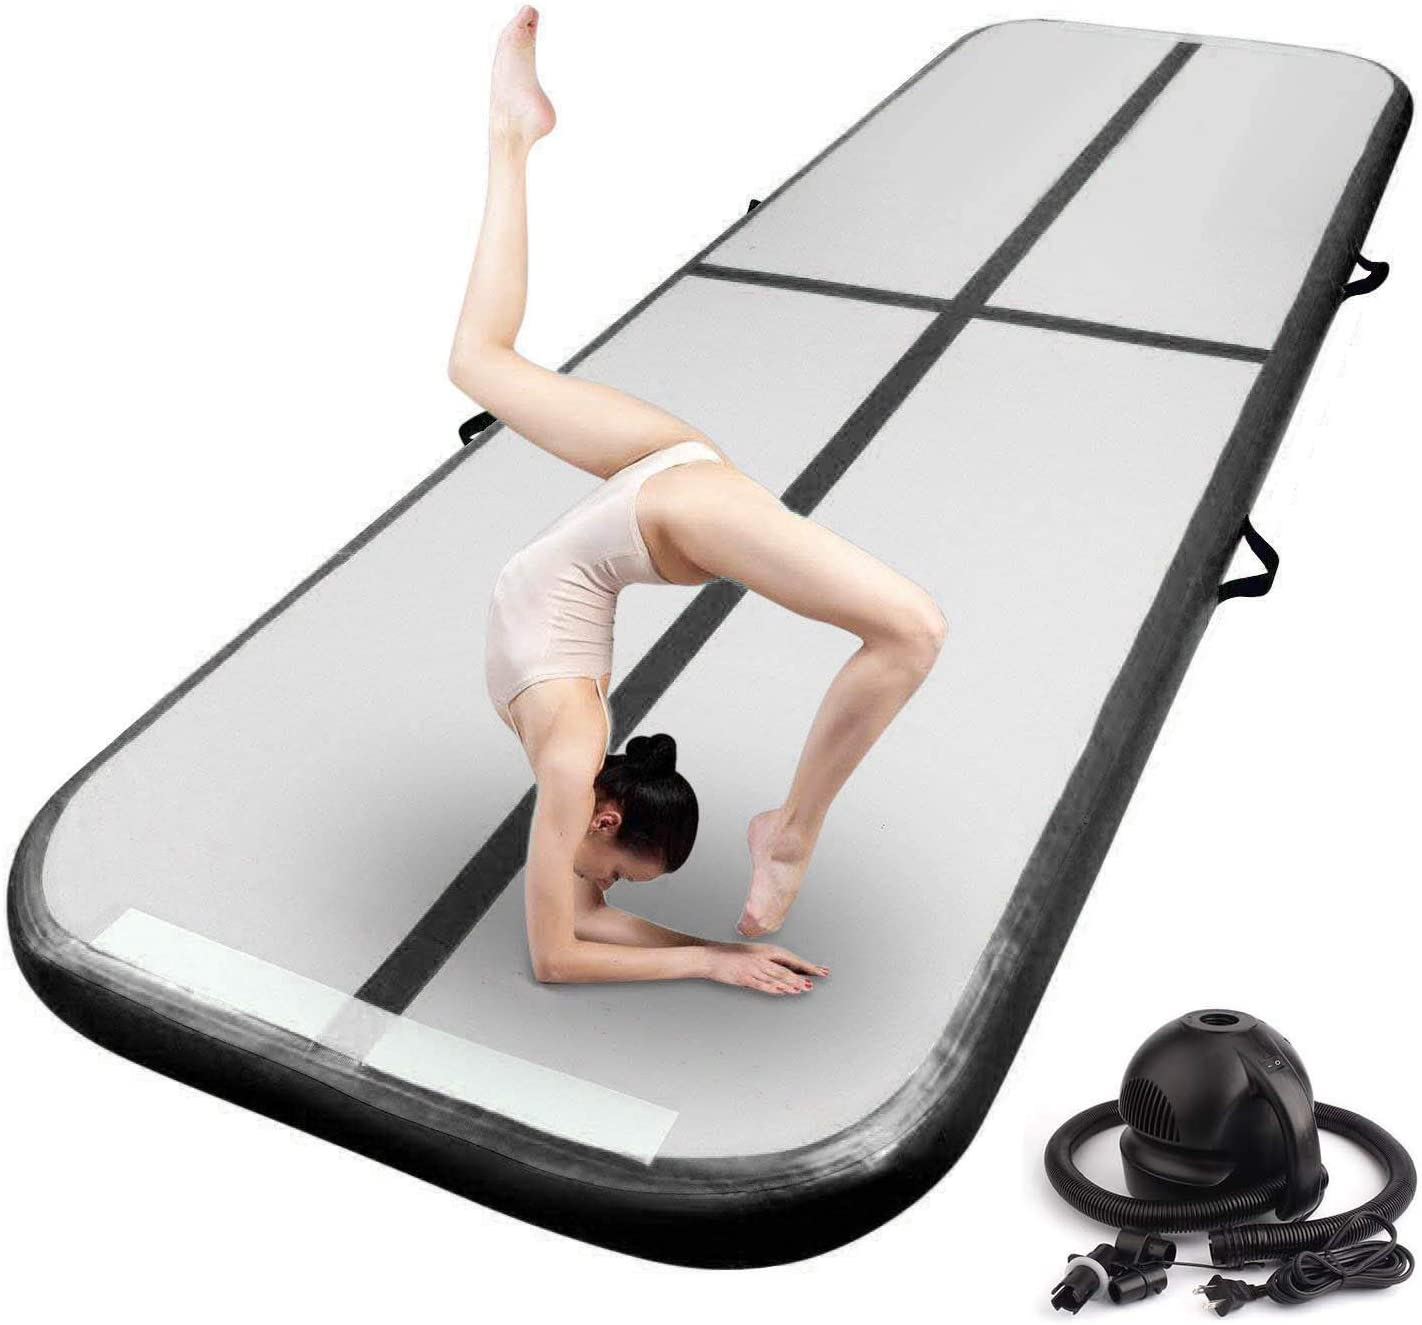 FBSPORT 13ft//16ft//20ft//23ft//26ft Inflatable Air Gymnastics Mat Training Mats 4//8 inches Thickness Gymnastics Tracks for Home Use//Training//Cheerleading//Yoga//Water with Pump